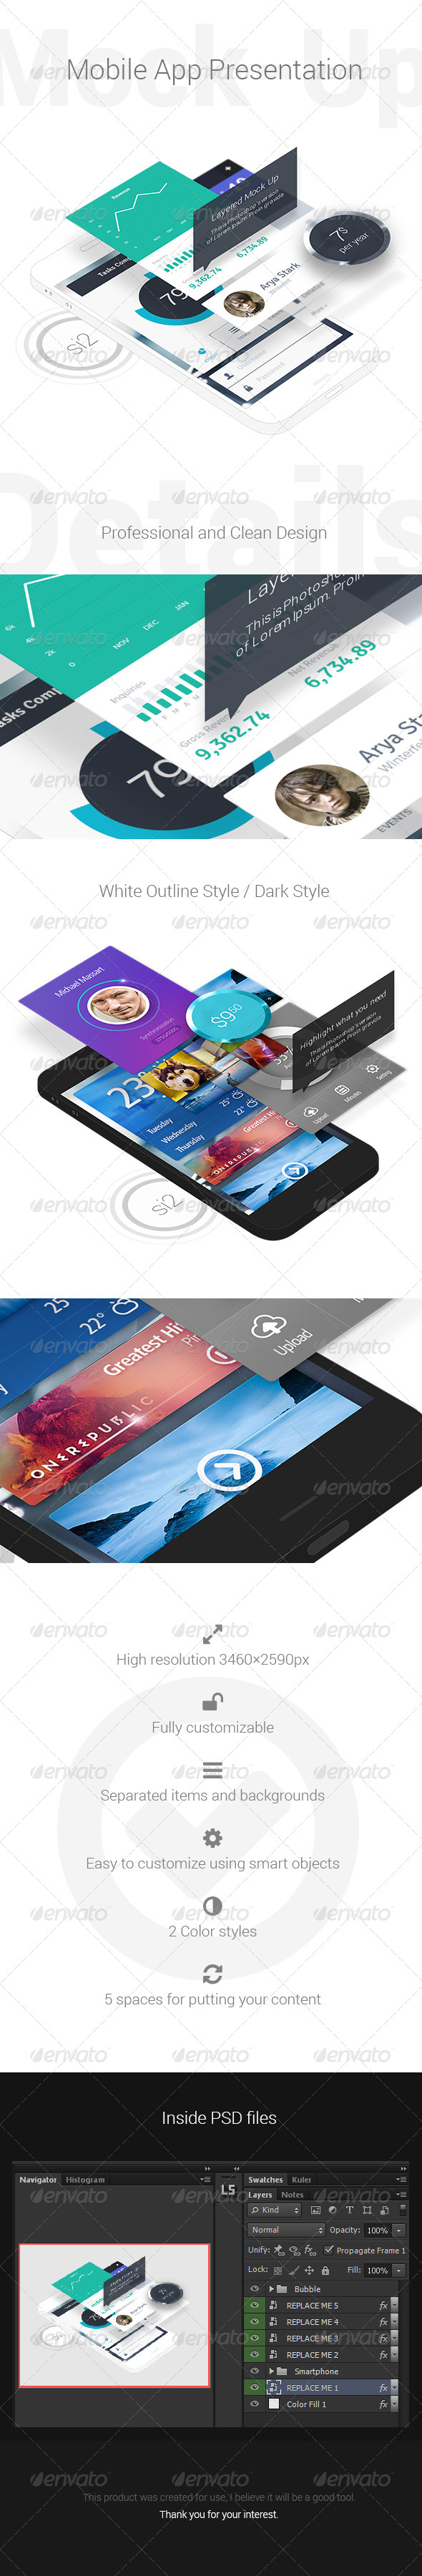 GraphicRiver Mobile App Presentation Mock-Up 6269679